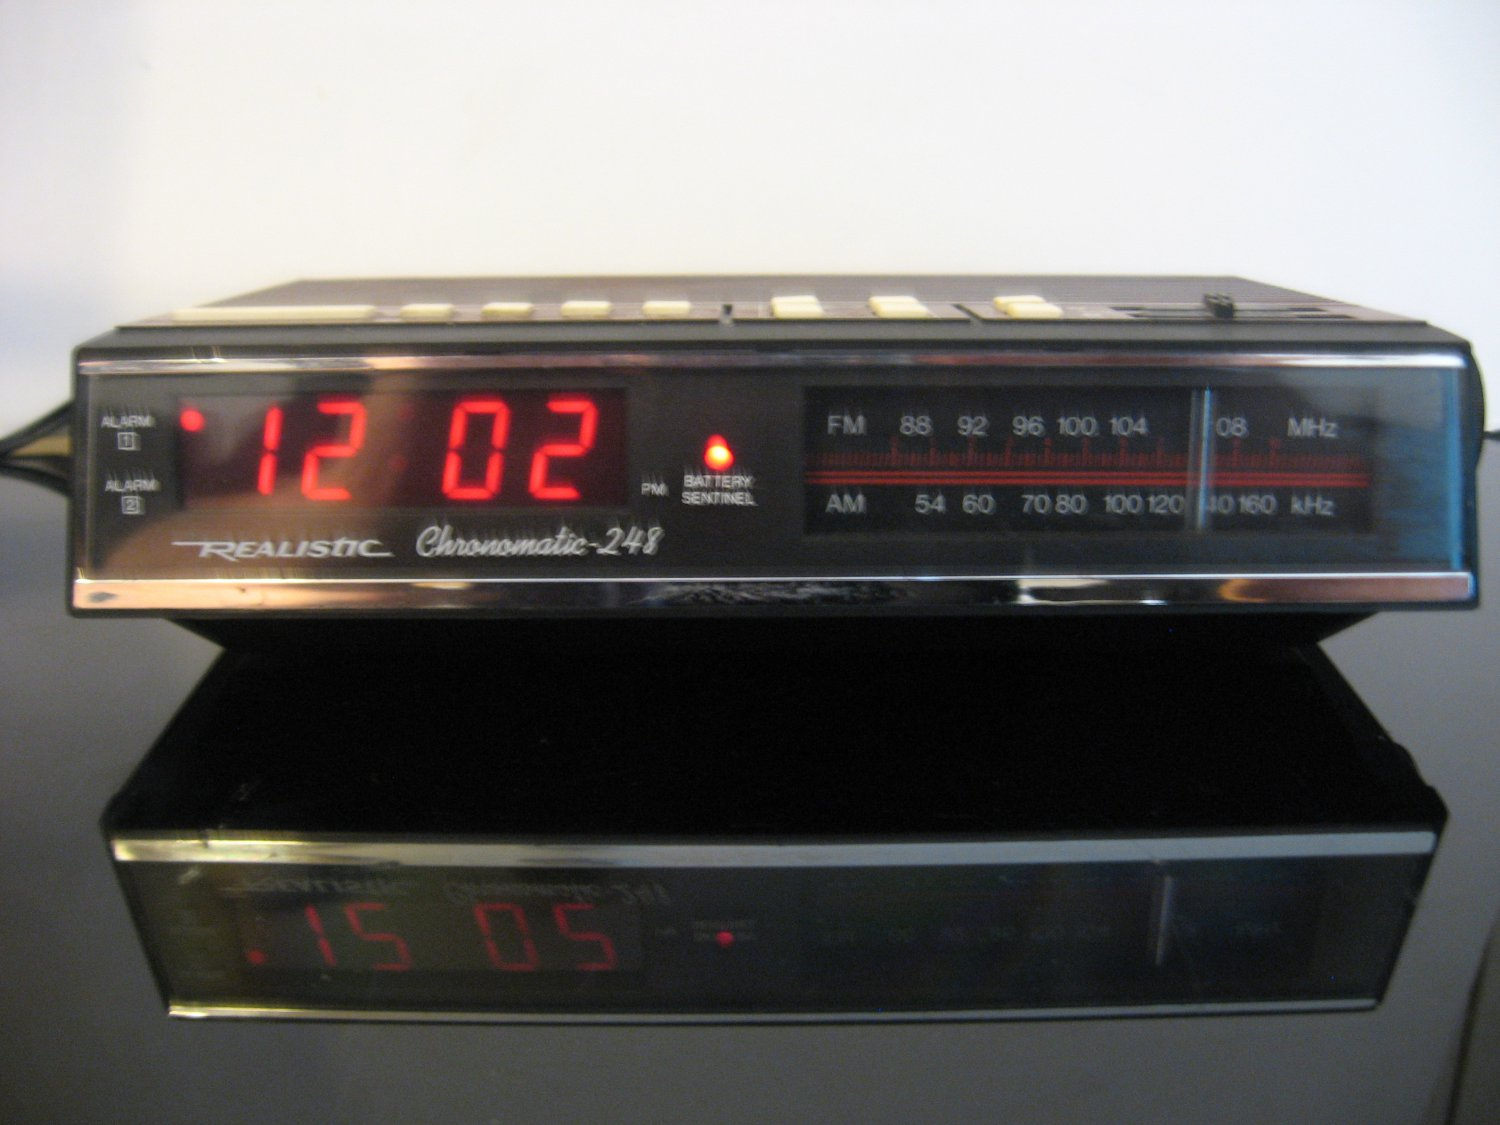 Vintage Realistic Chronomatic 248 - AM FM Radio Alarm Clock - Woodgrain finish